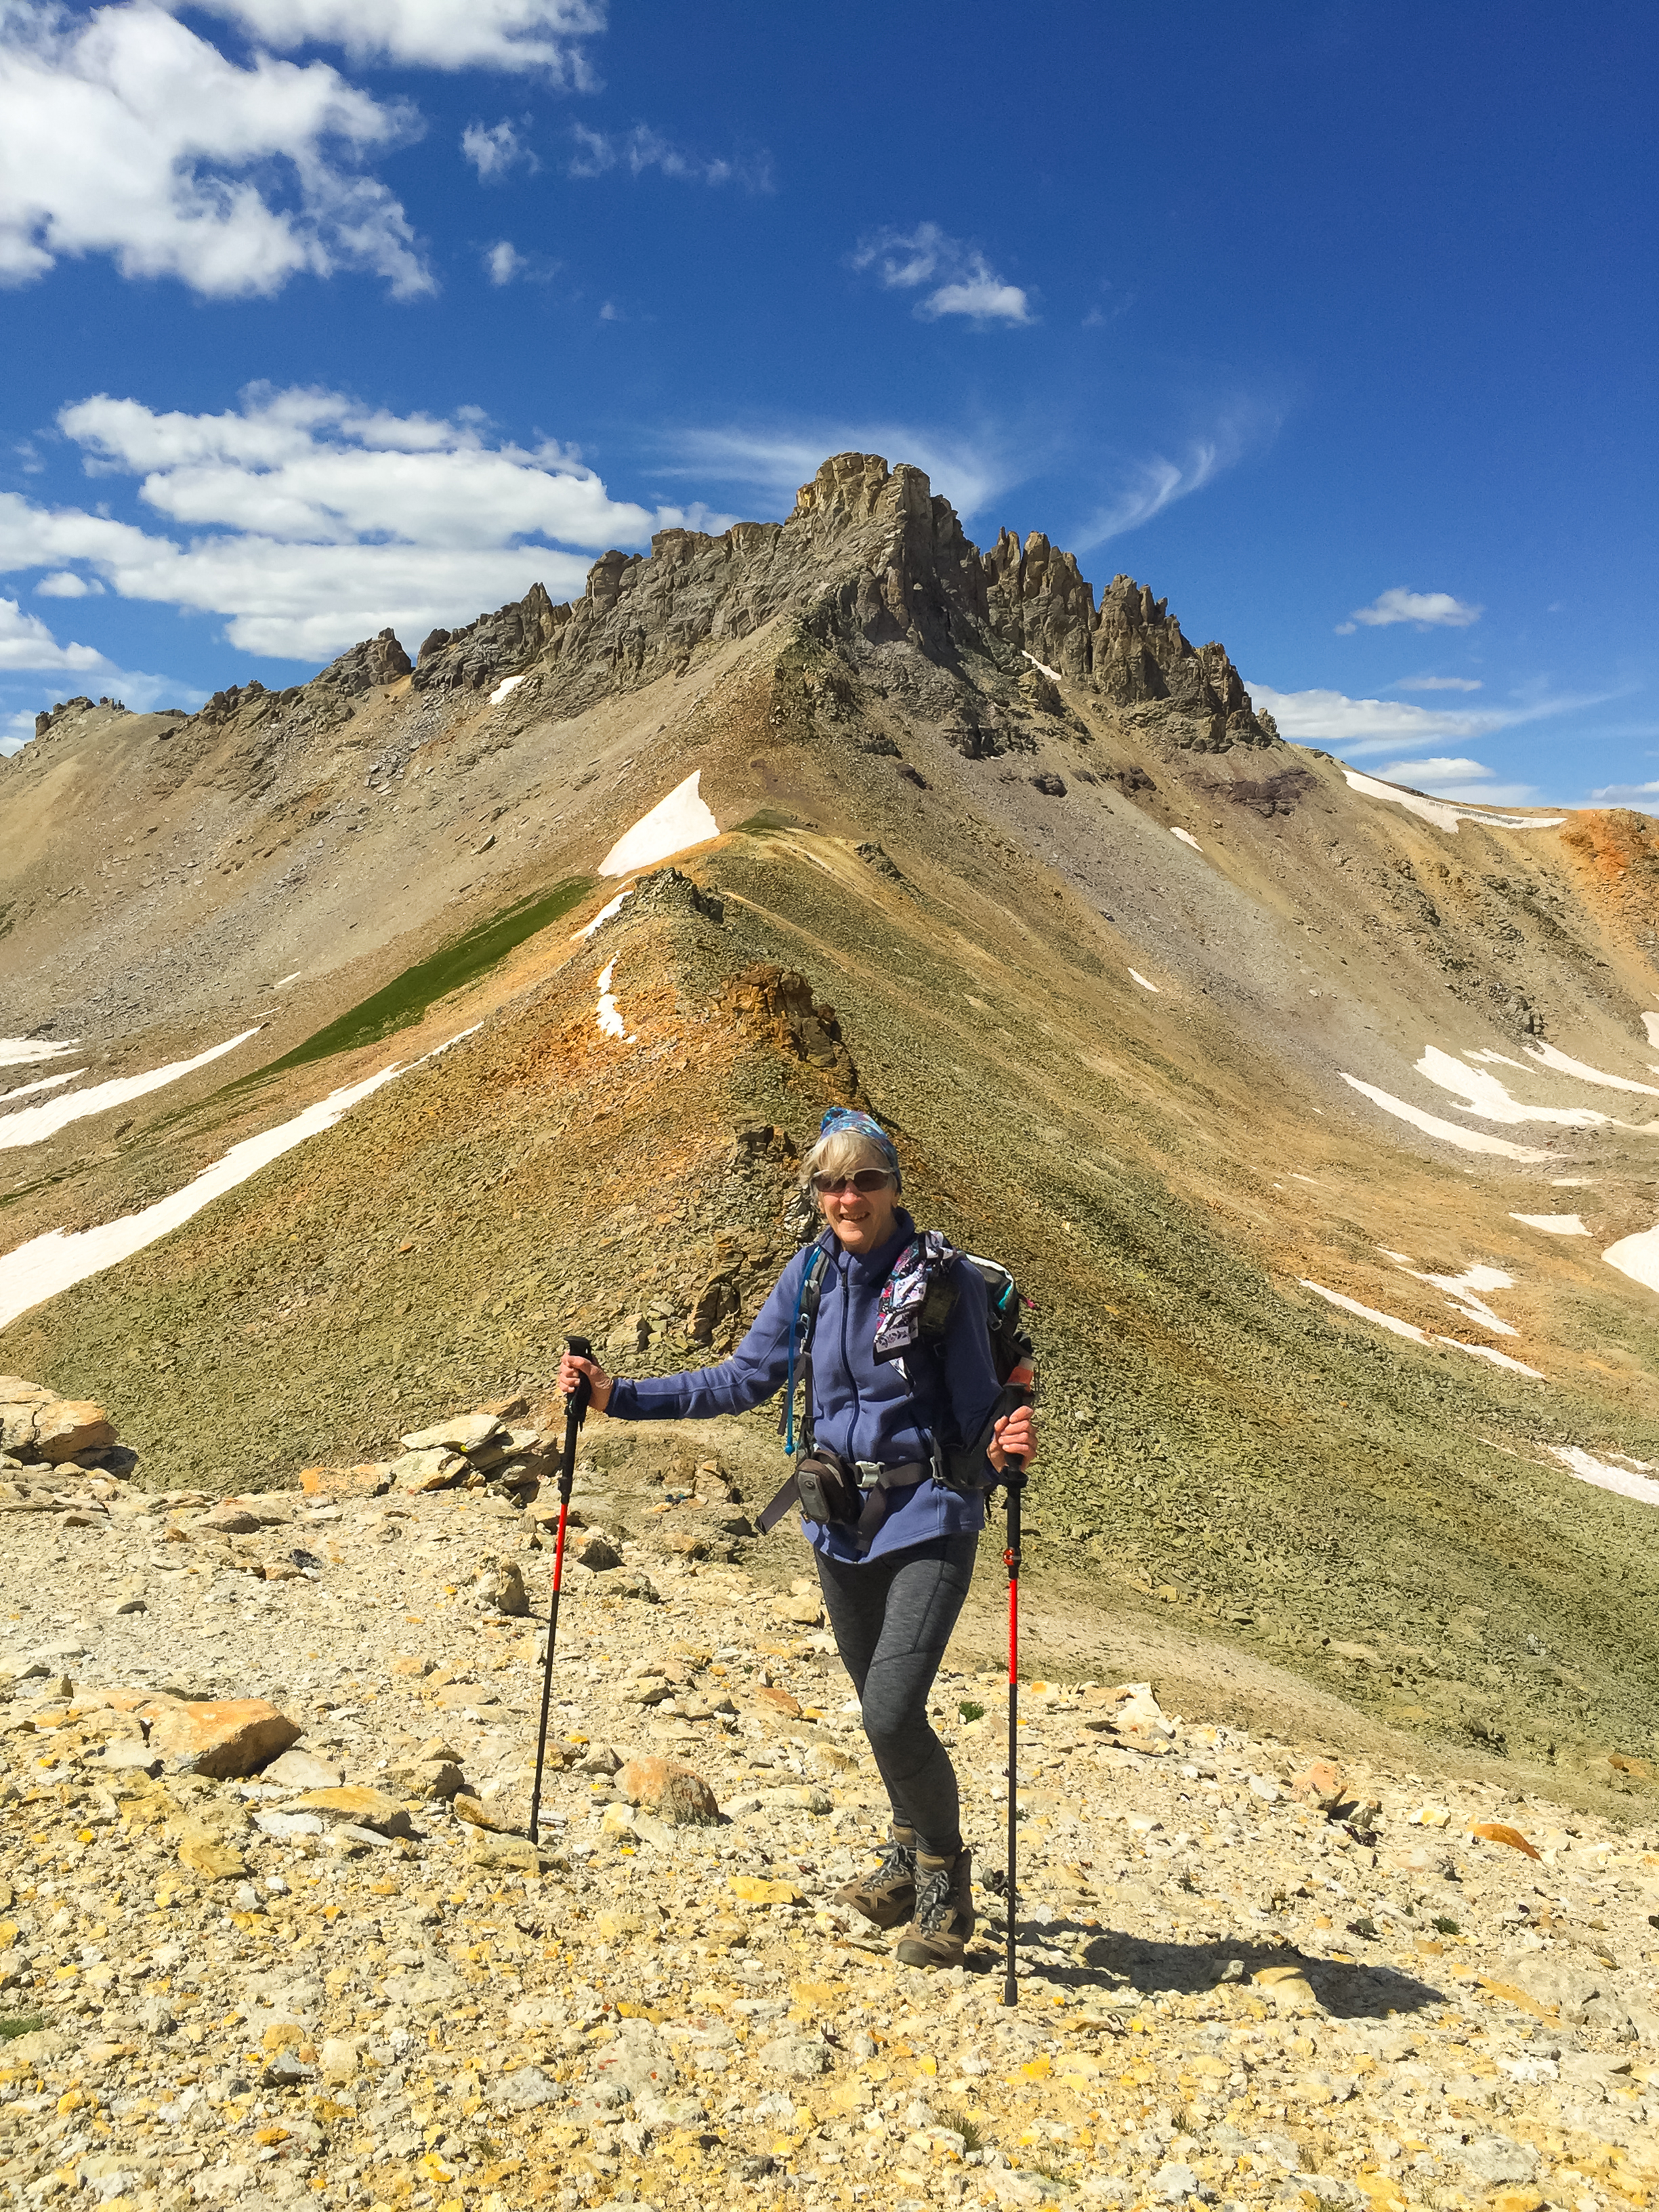 Penny at 13,050' with Three Peaks in the background